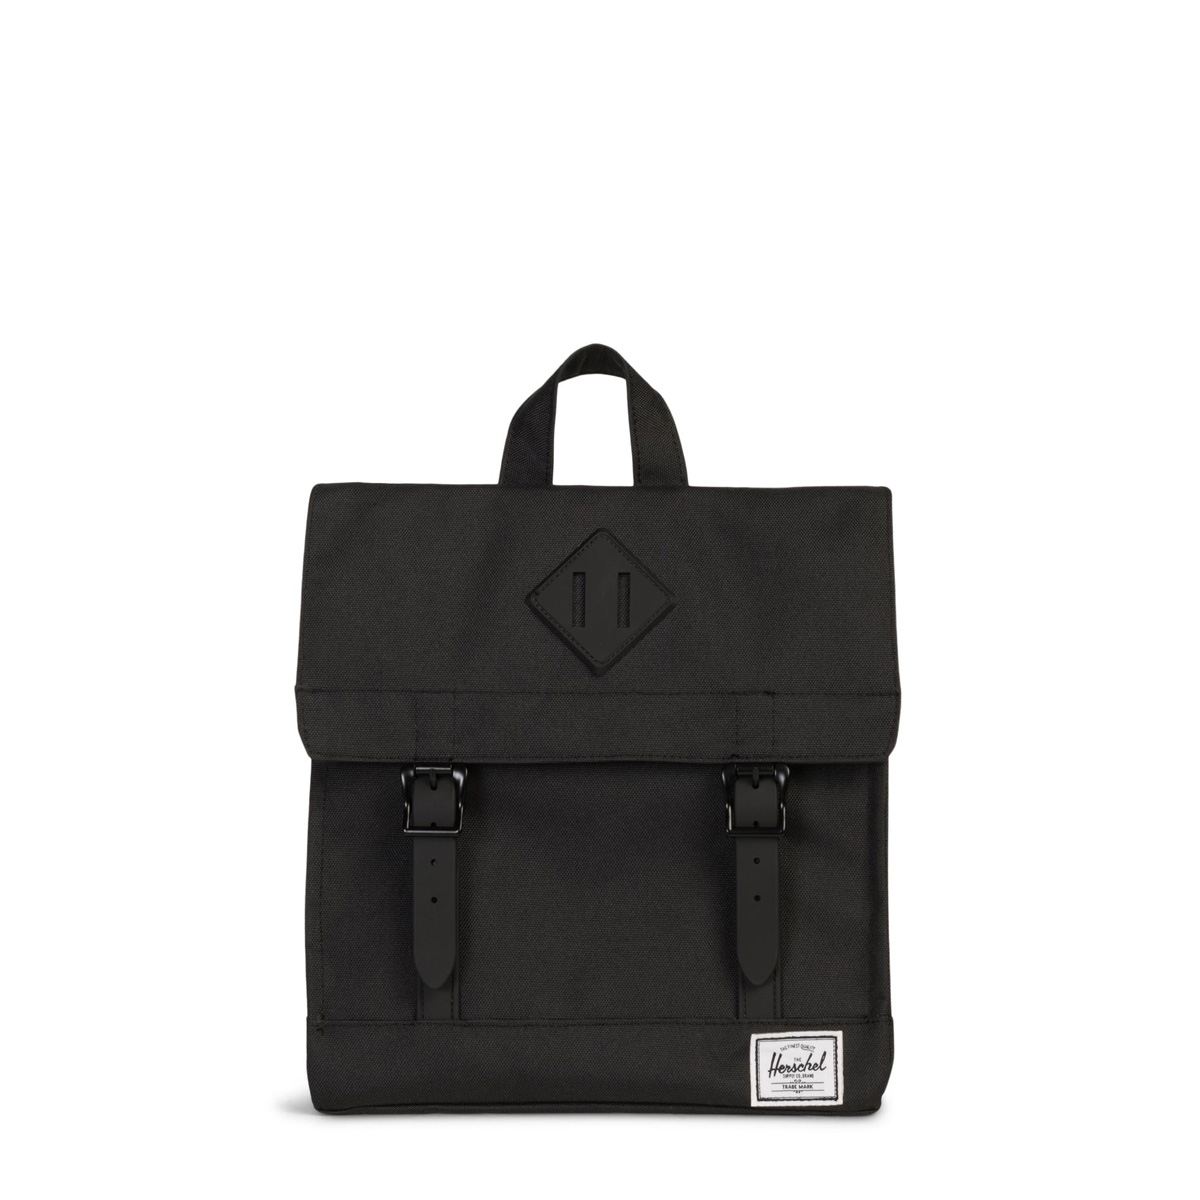 2c35daacc3da Canada is now most up-and-coming bag brand HERSCHEL by from Vancouver. The  finish which is outstandingly stylish D Tyr who included urbane